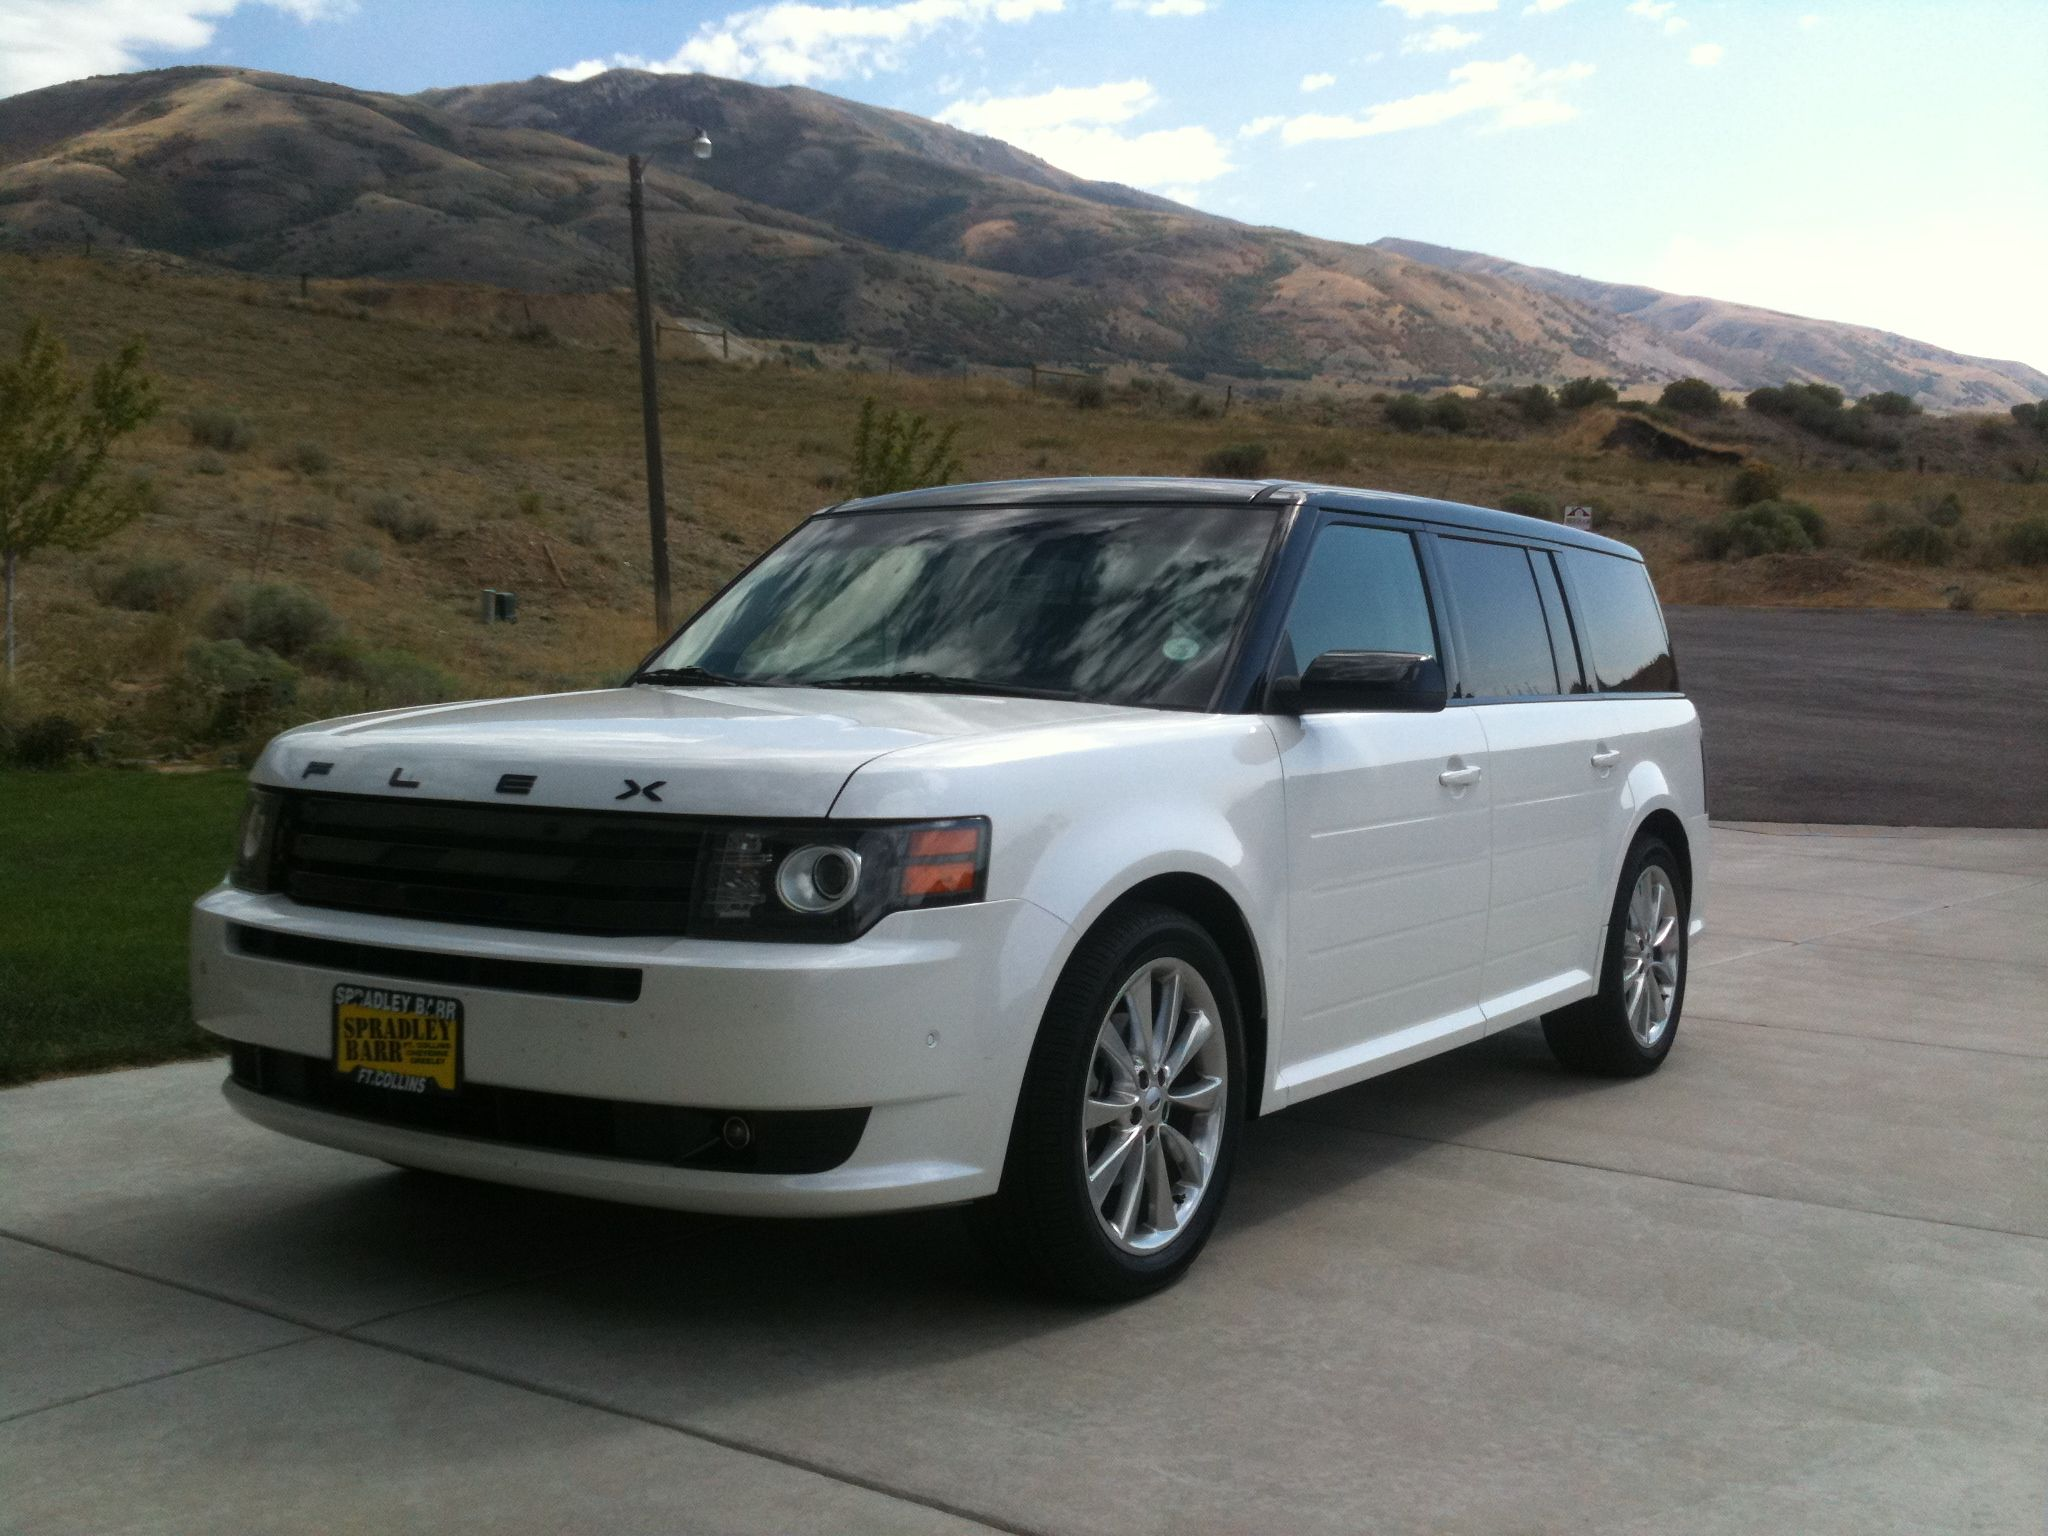 Our 2012 ford flex has been a great vehicle